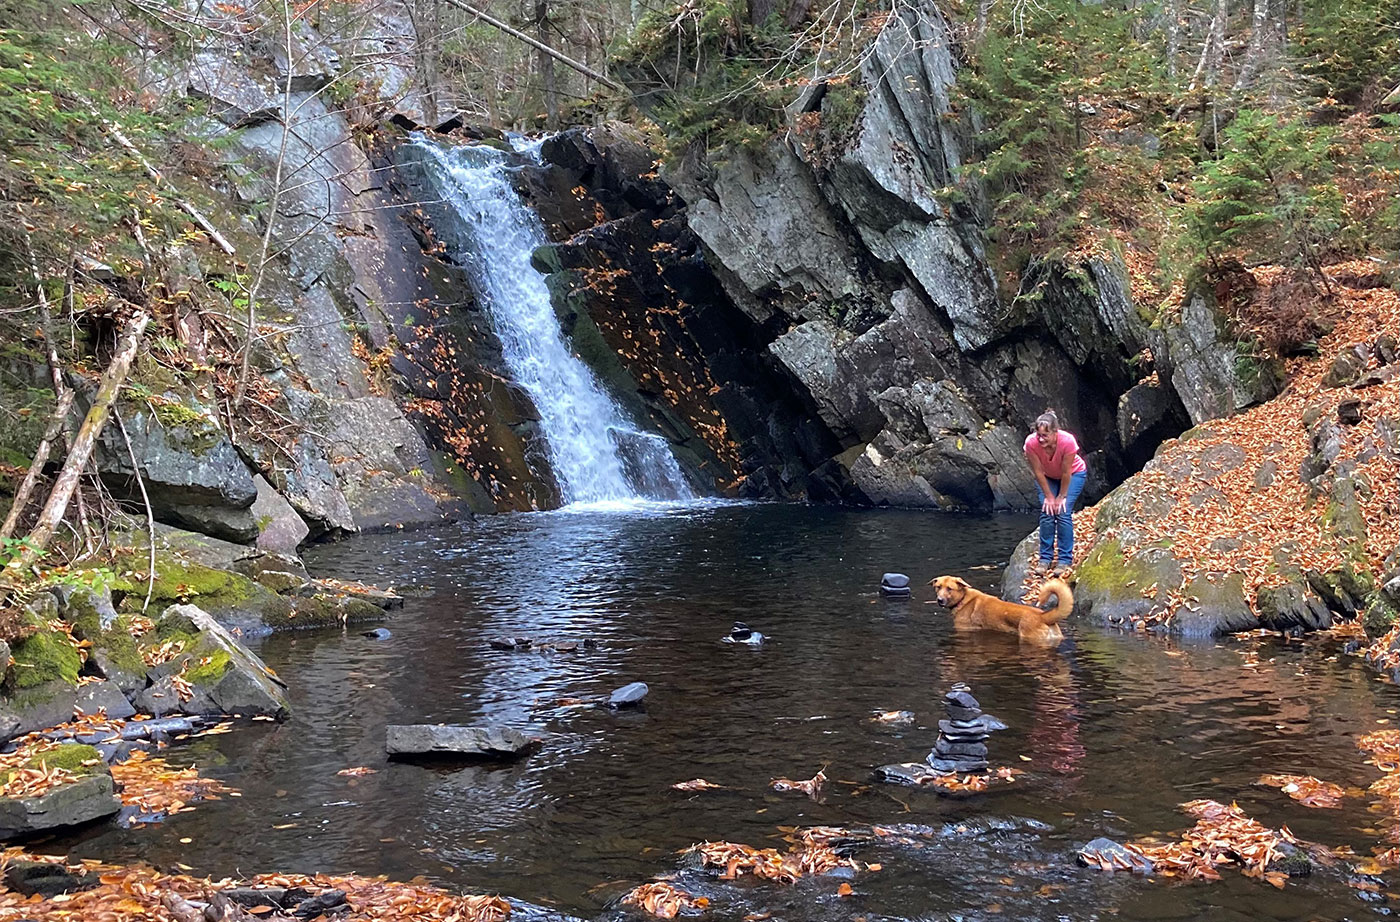 Cold Stream Falls waterfall with woman and dog in water